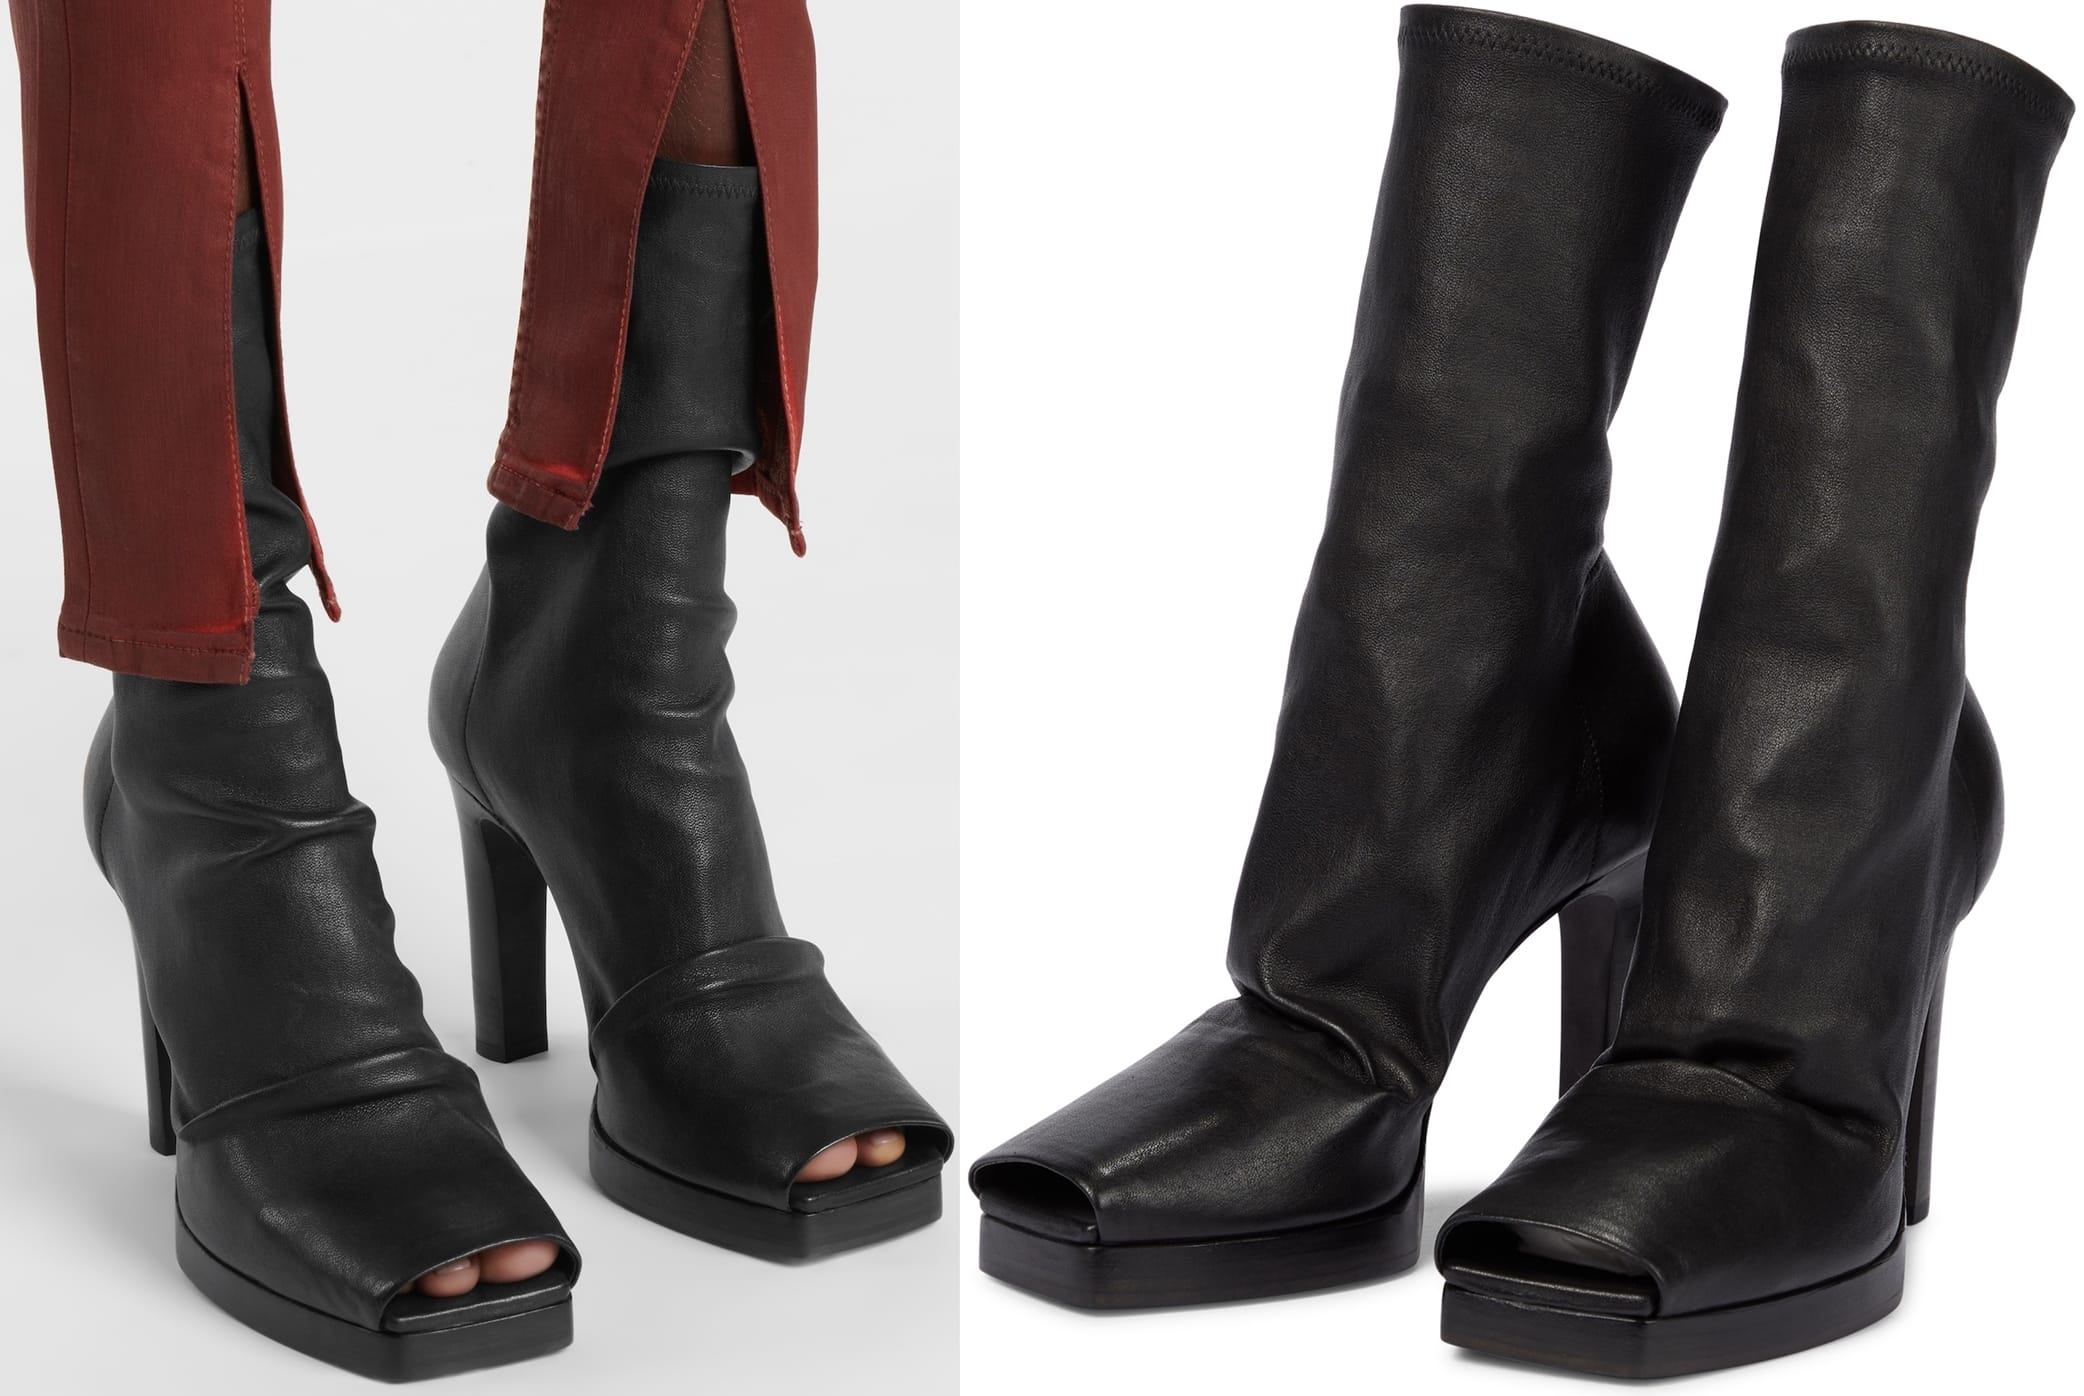 Made from cushioning nappa leather, these ankle boots have contemporary square peep-toes and plinth heels